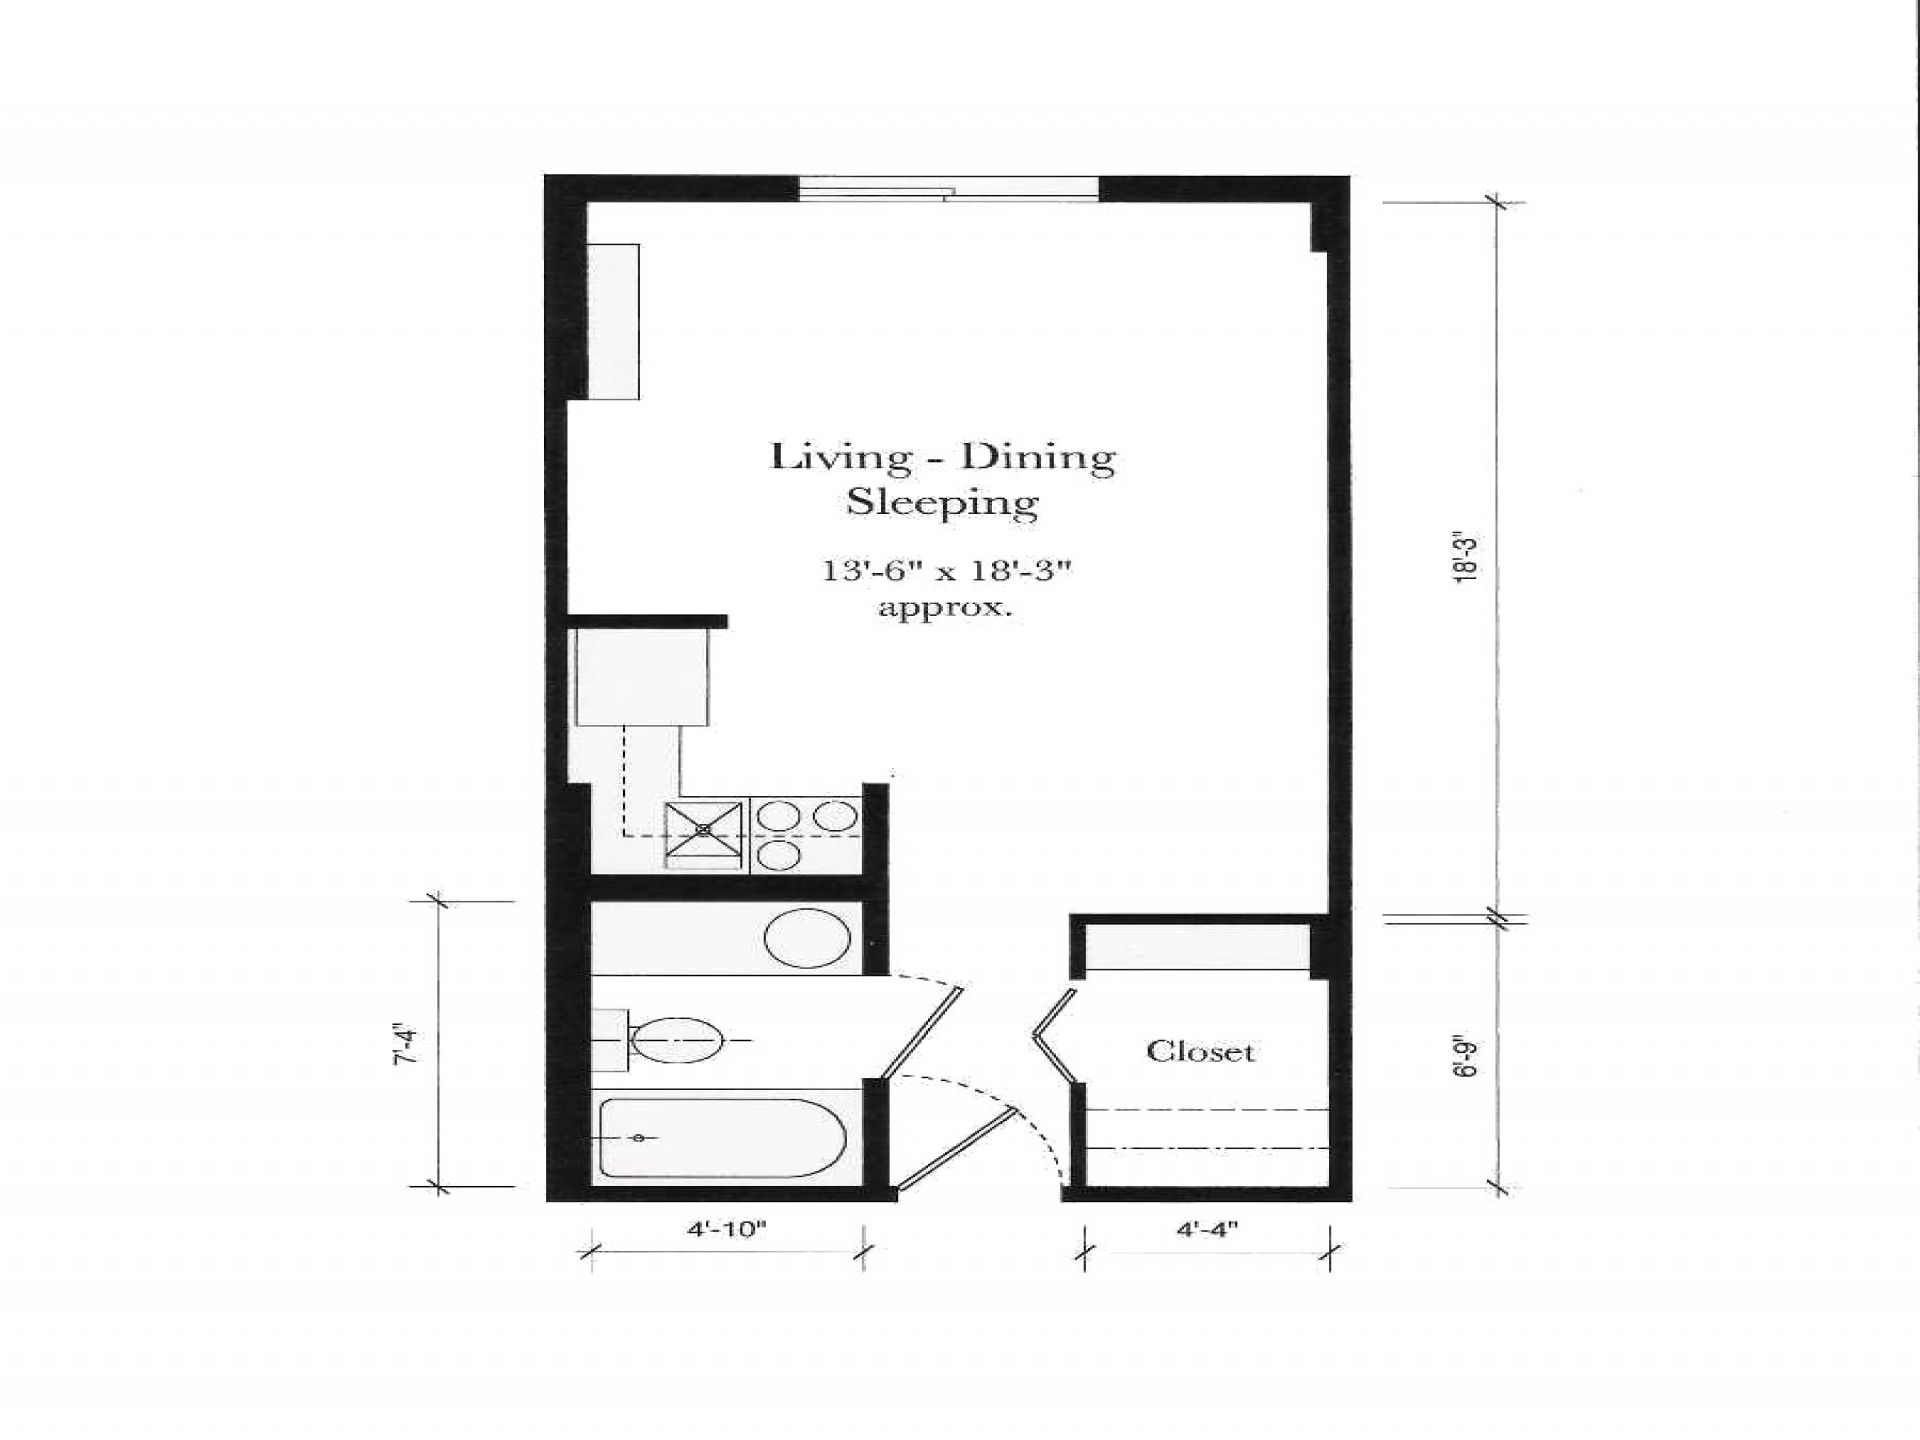 Apartment studio floor plan simple floor design studio Efficiency apartment floor plan